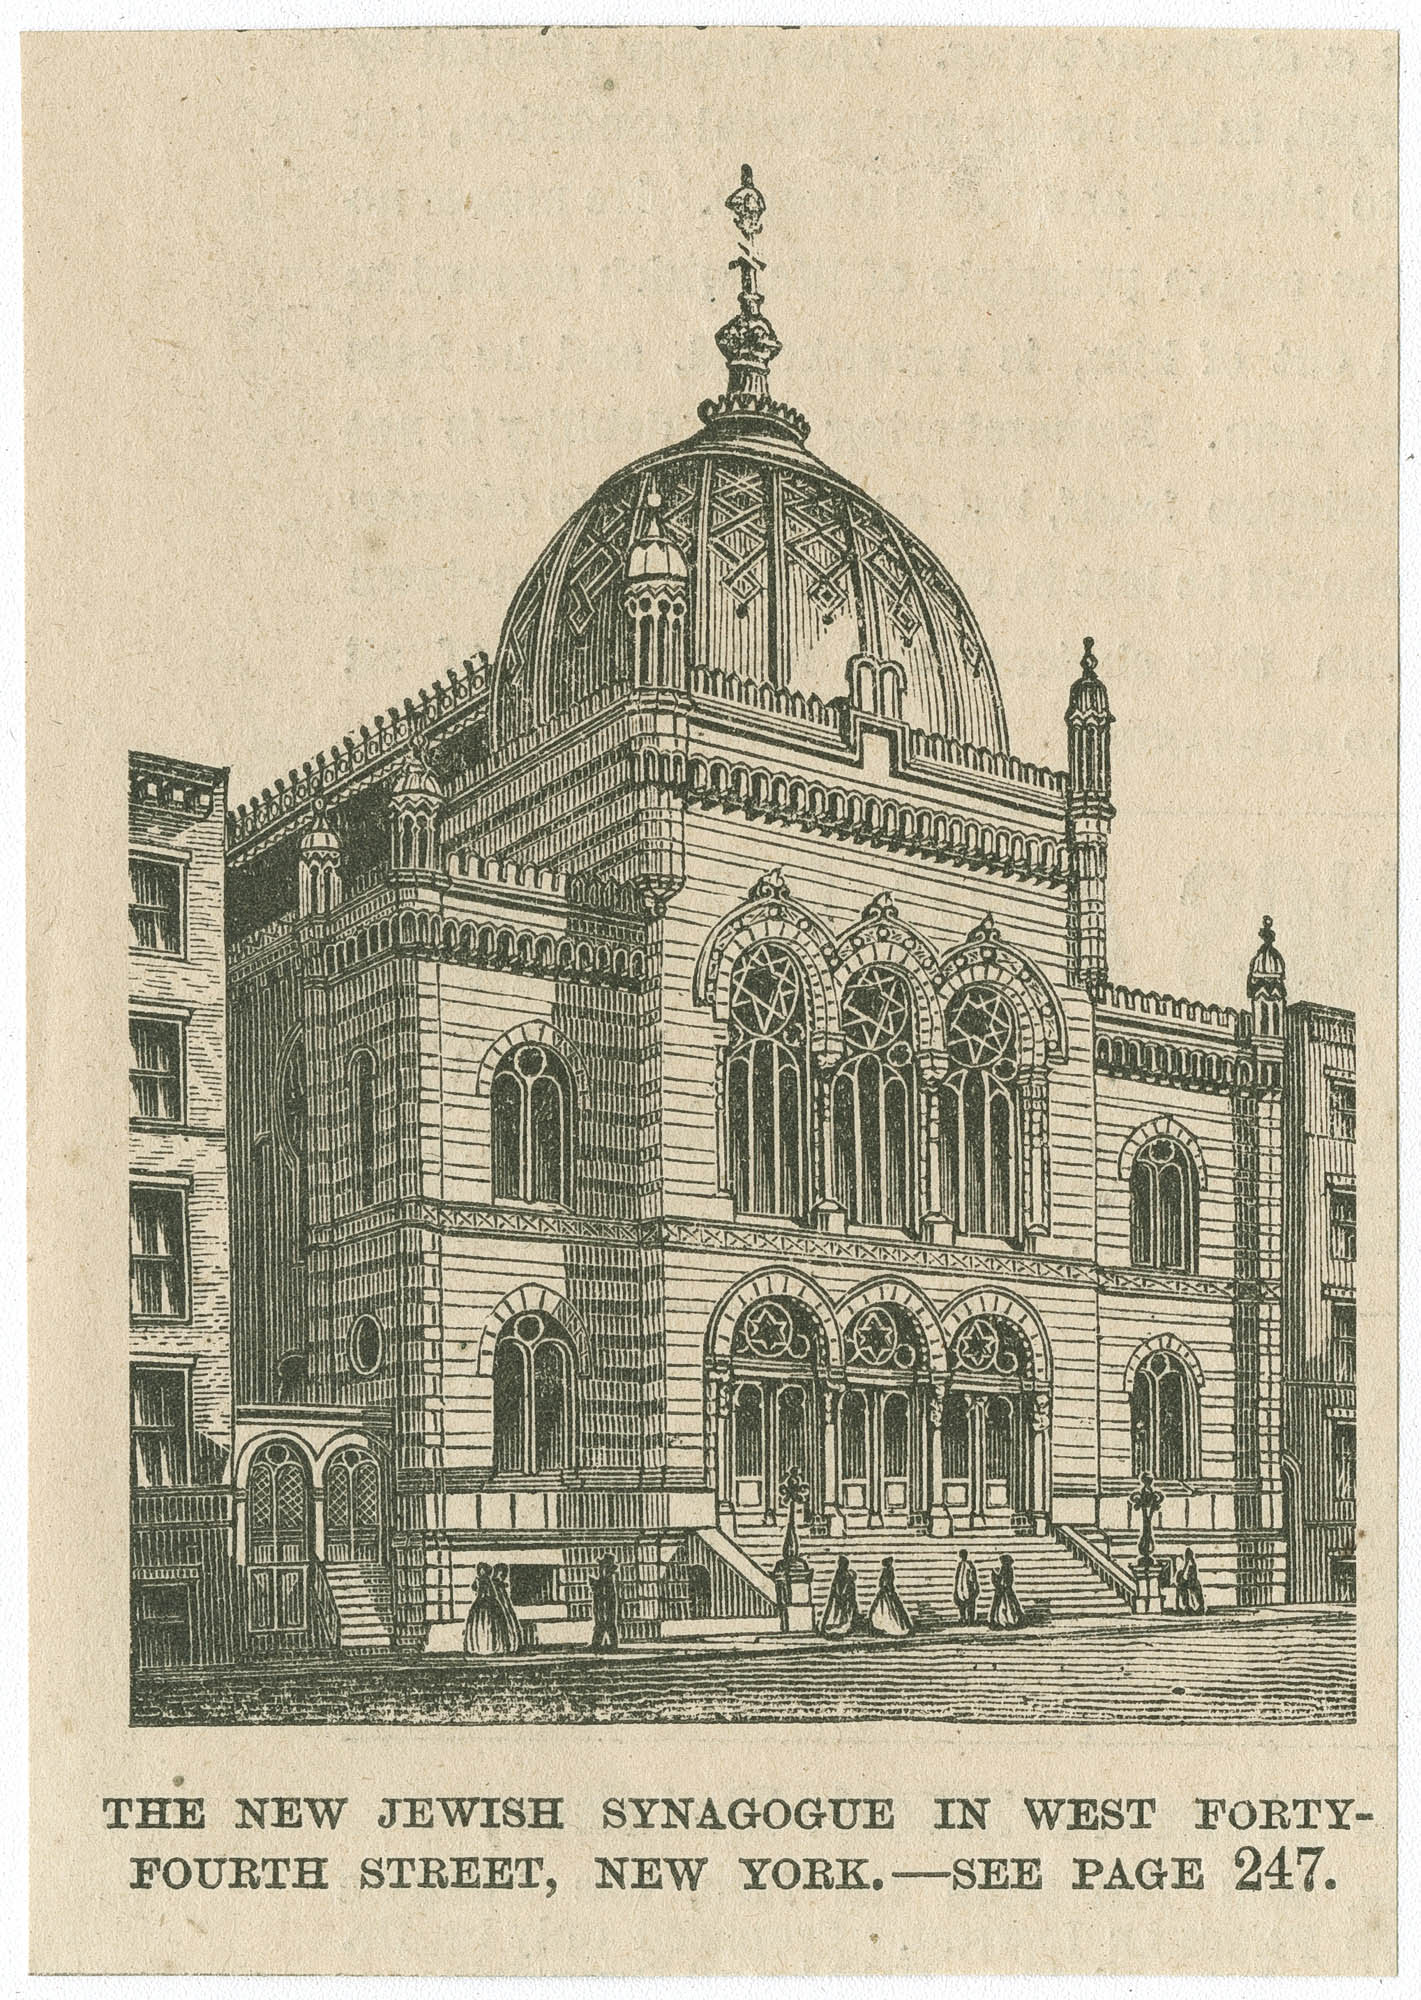 The new Jewish Synagogue in West Forty-Fourth Street, New York